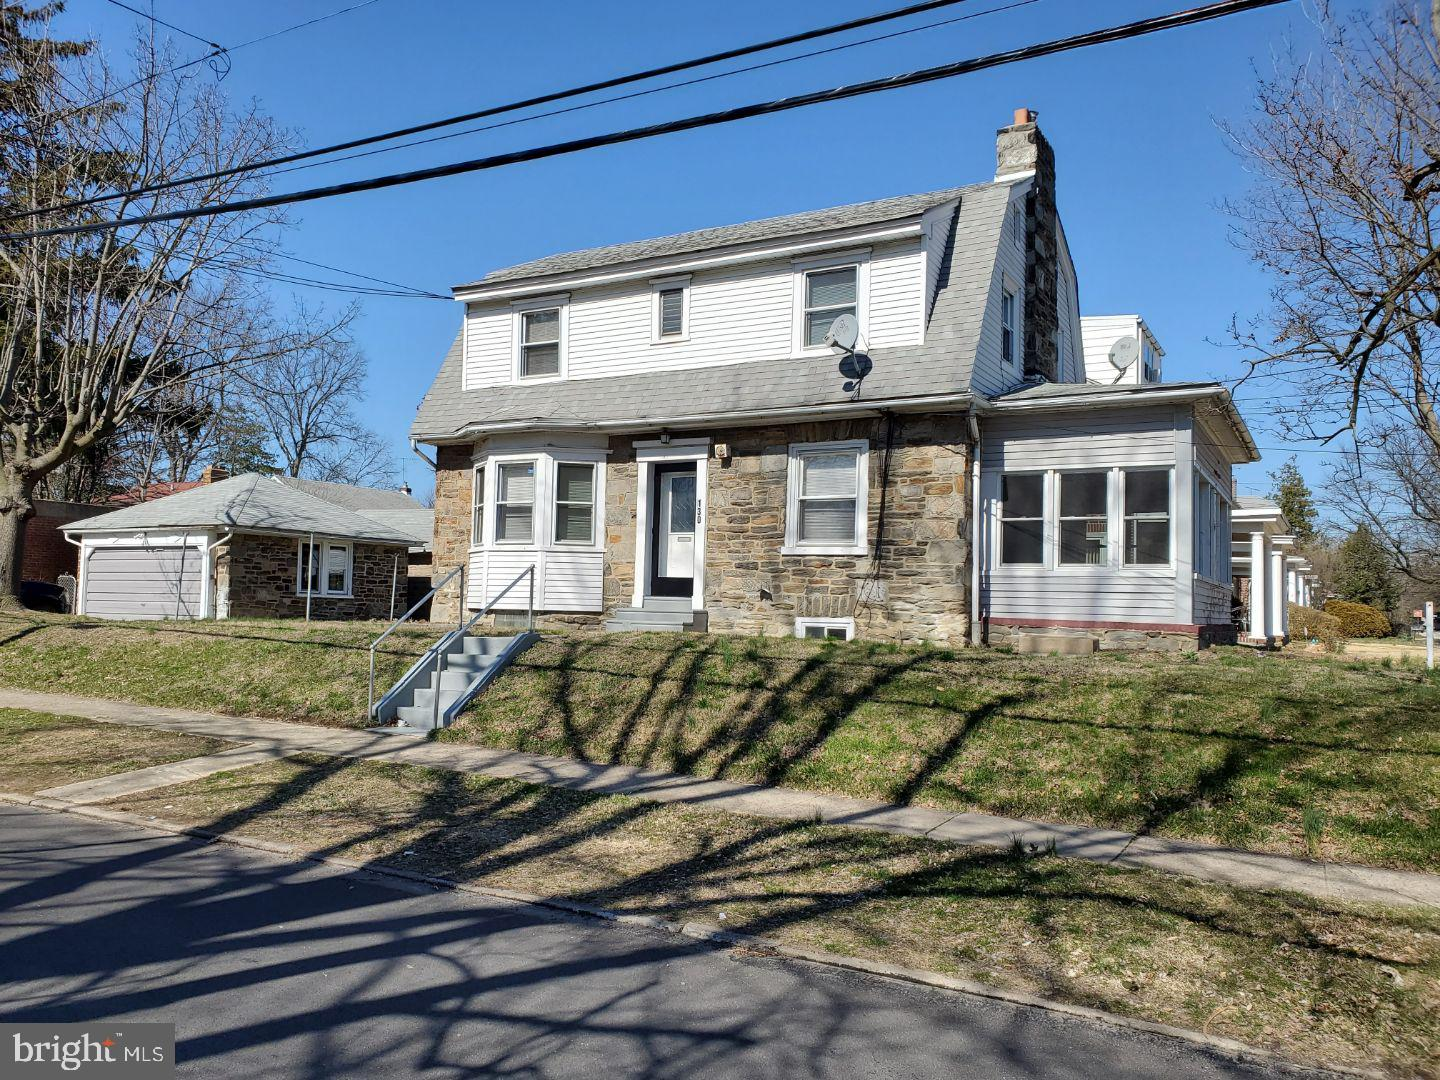 130 W Mowry Street, Chester, PA 19013